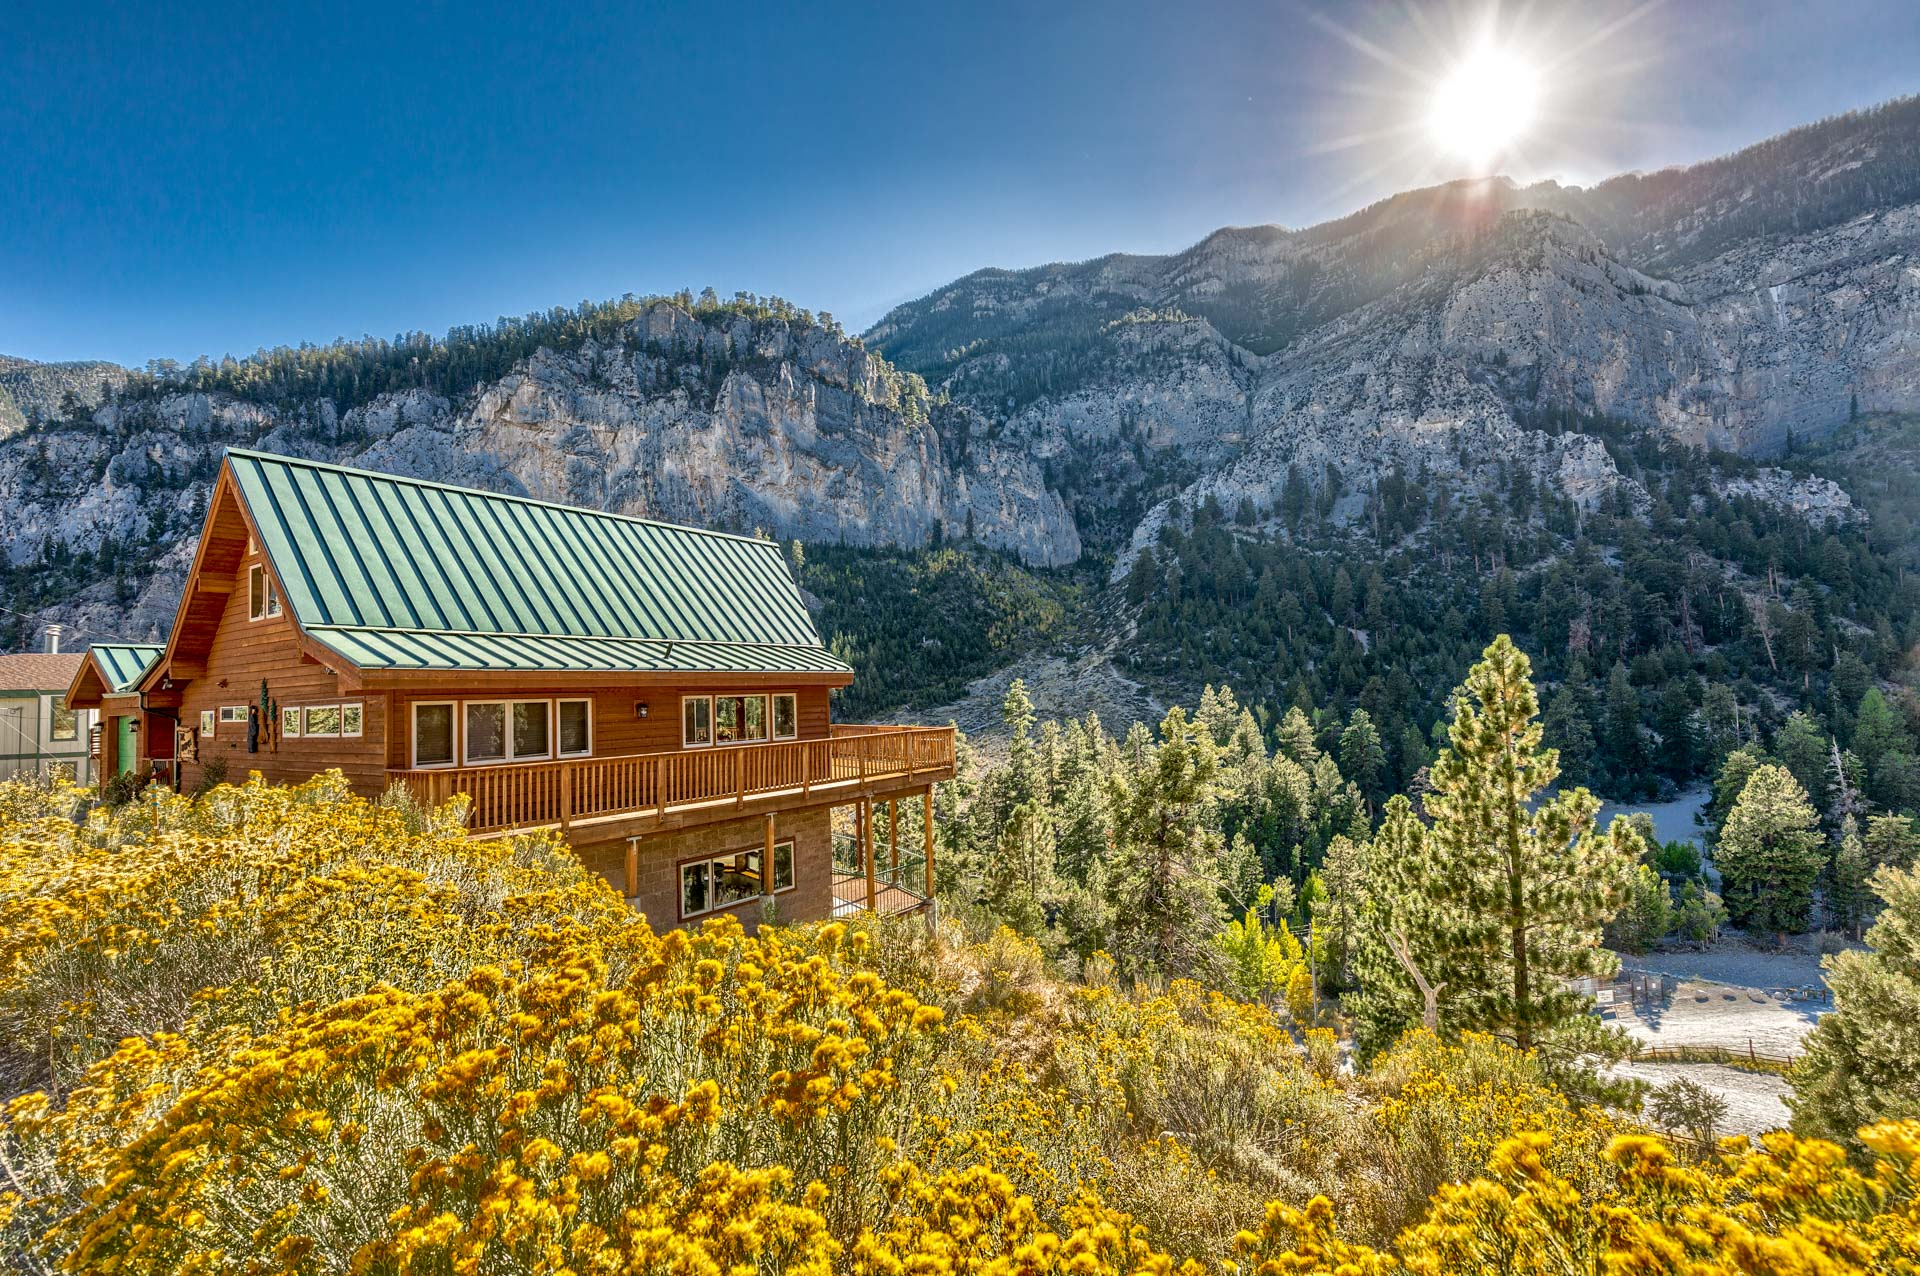 Mt charleston nevada homes for sale for Cabin rentals in nevada